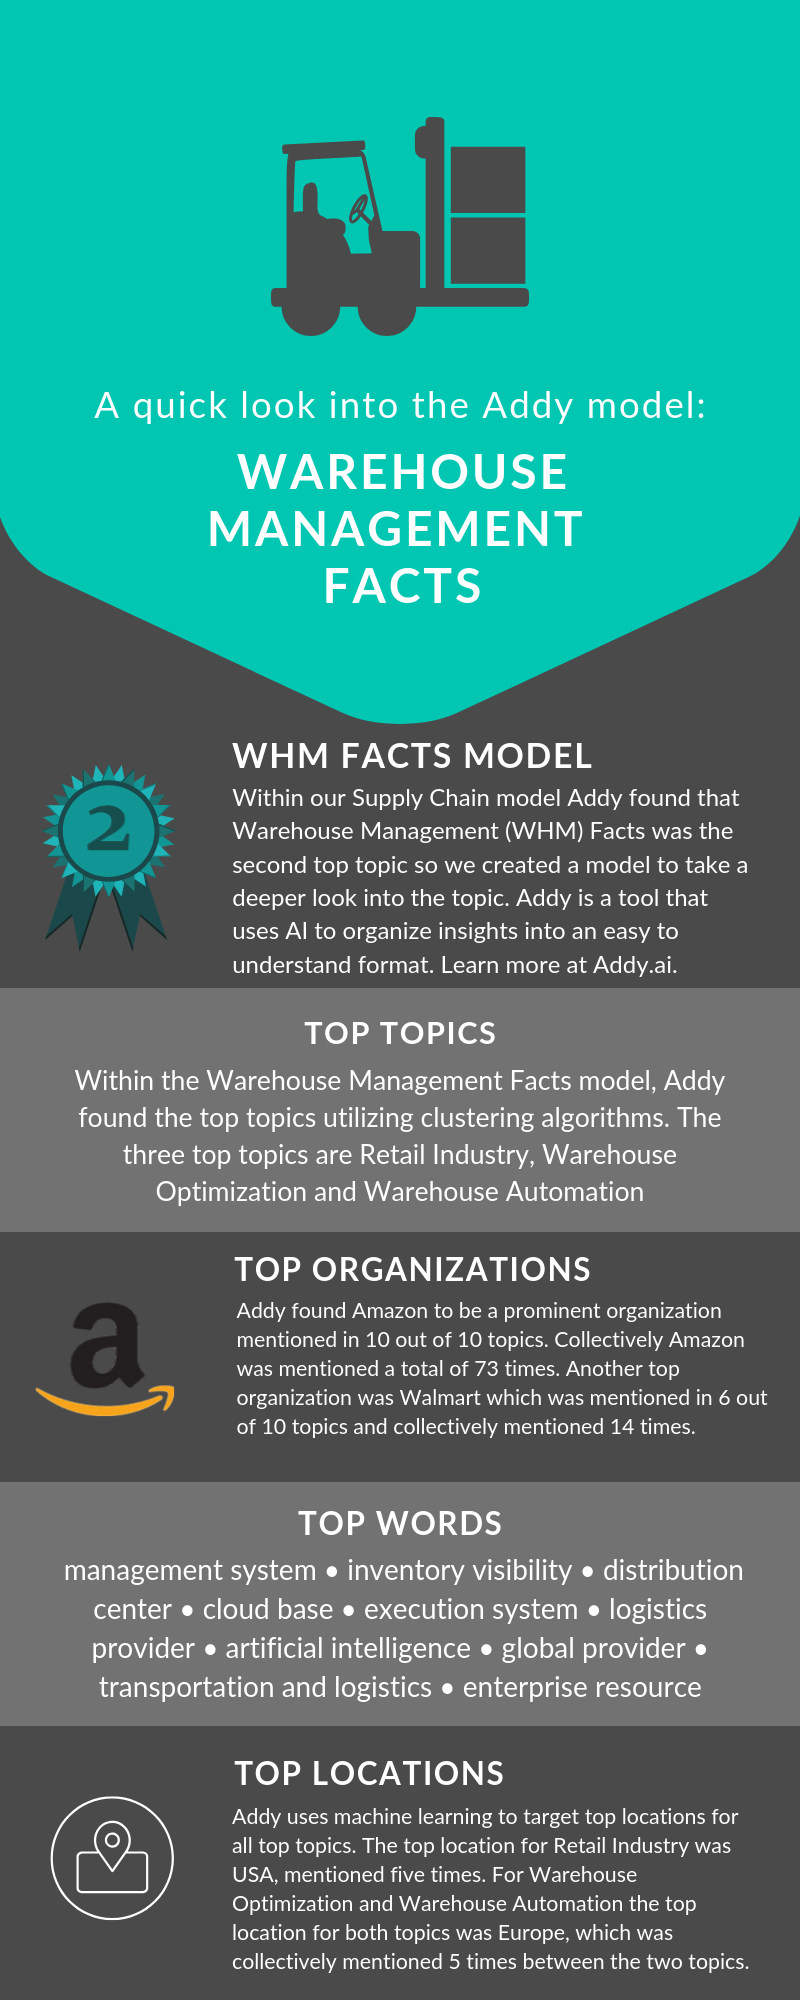 A quick look into the Addy model: Warehouse Management Facts